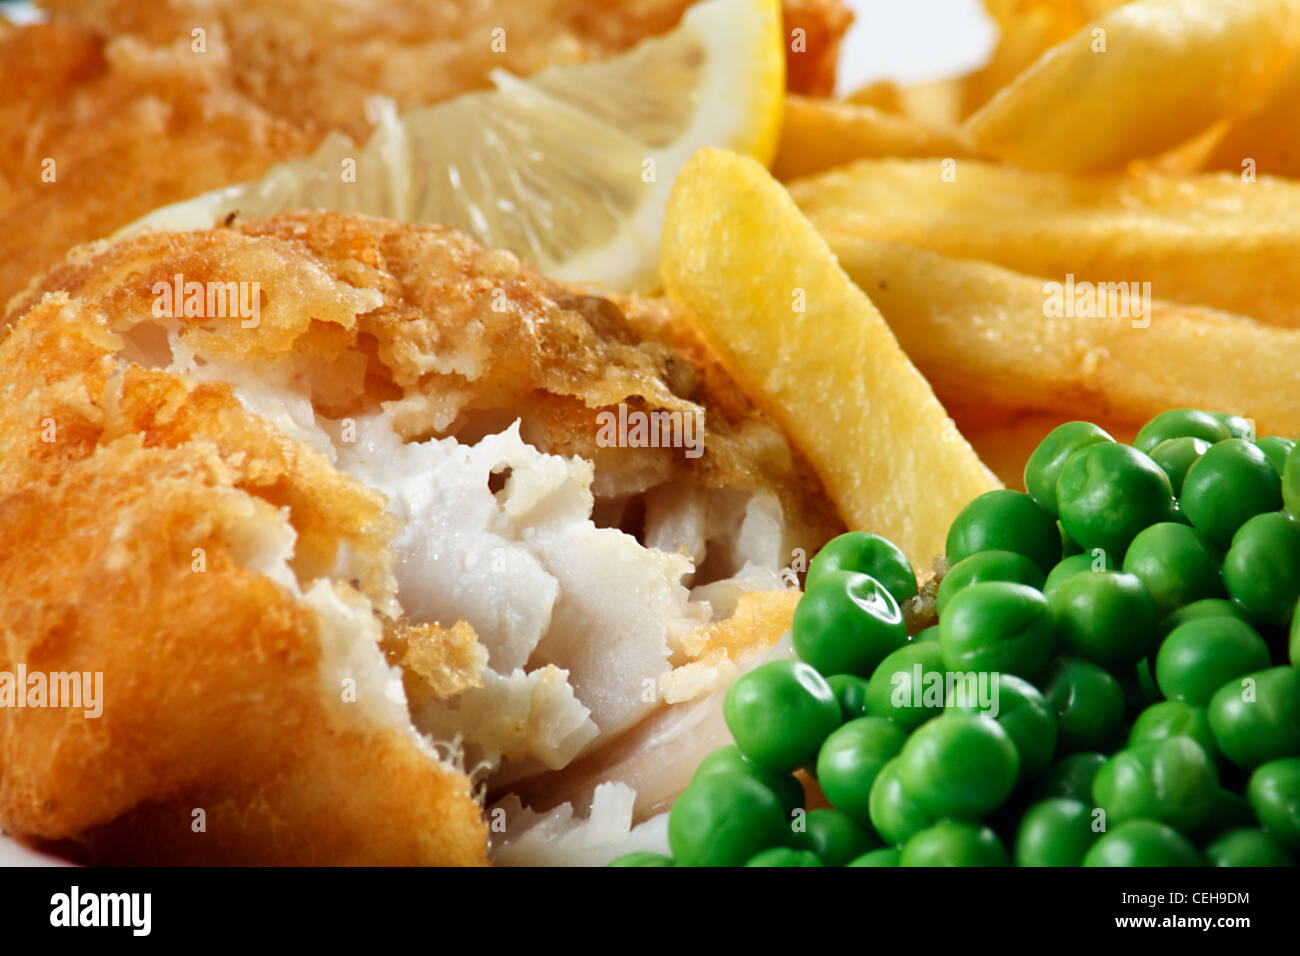 Close up of fish and chips avec pois et d'une tranche de citron. Un plat traditionnel de la mer Photo Stock